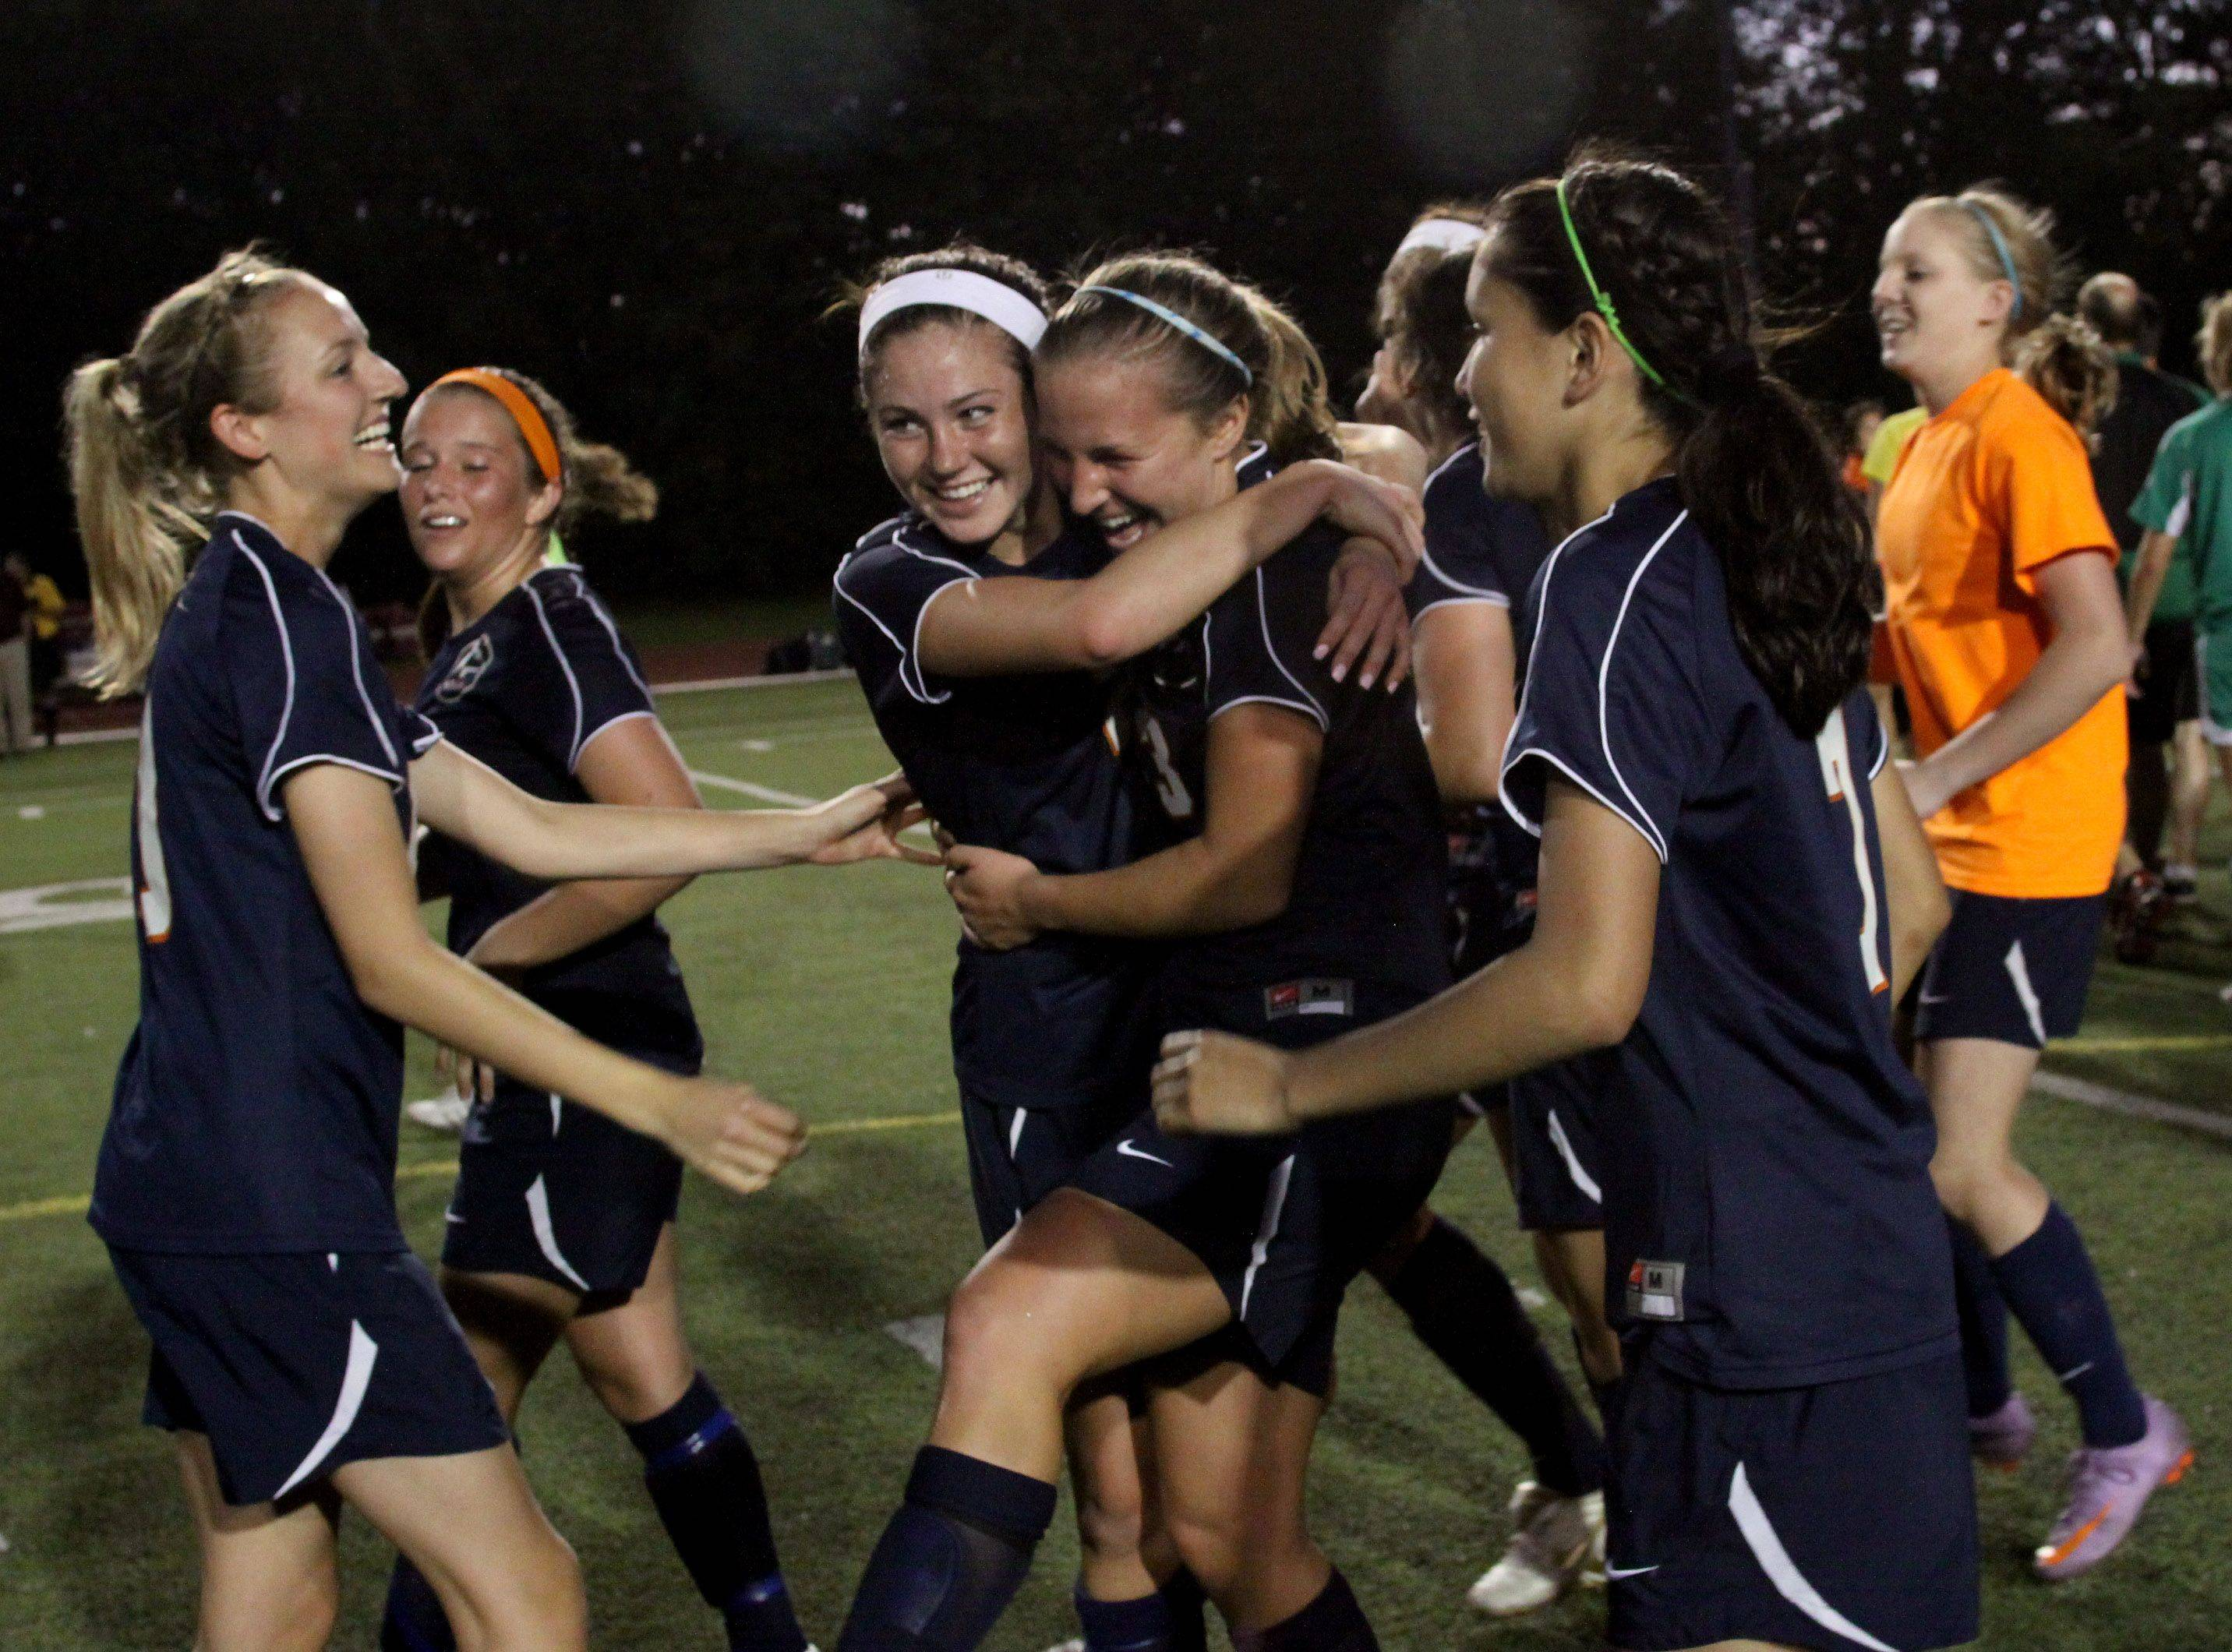 Naperville North celebrate their win over York in the Class 3A Benedictine supersectional girls soccer match Tuesday in Lisle.